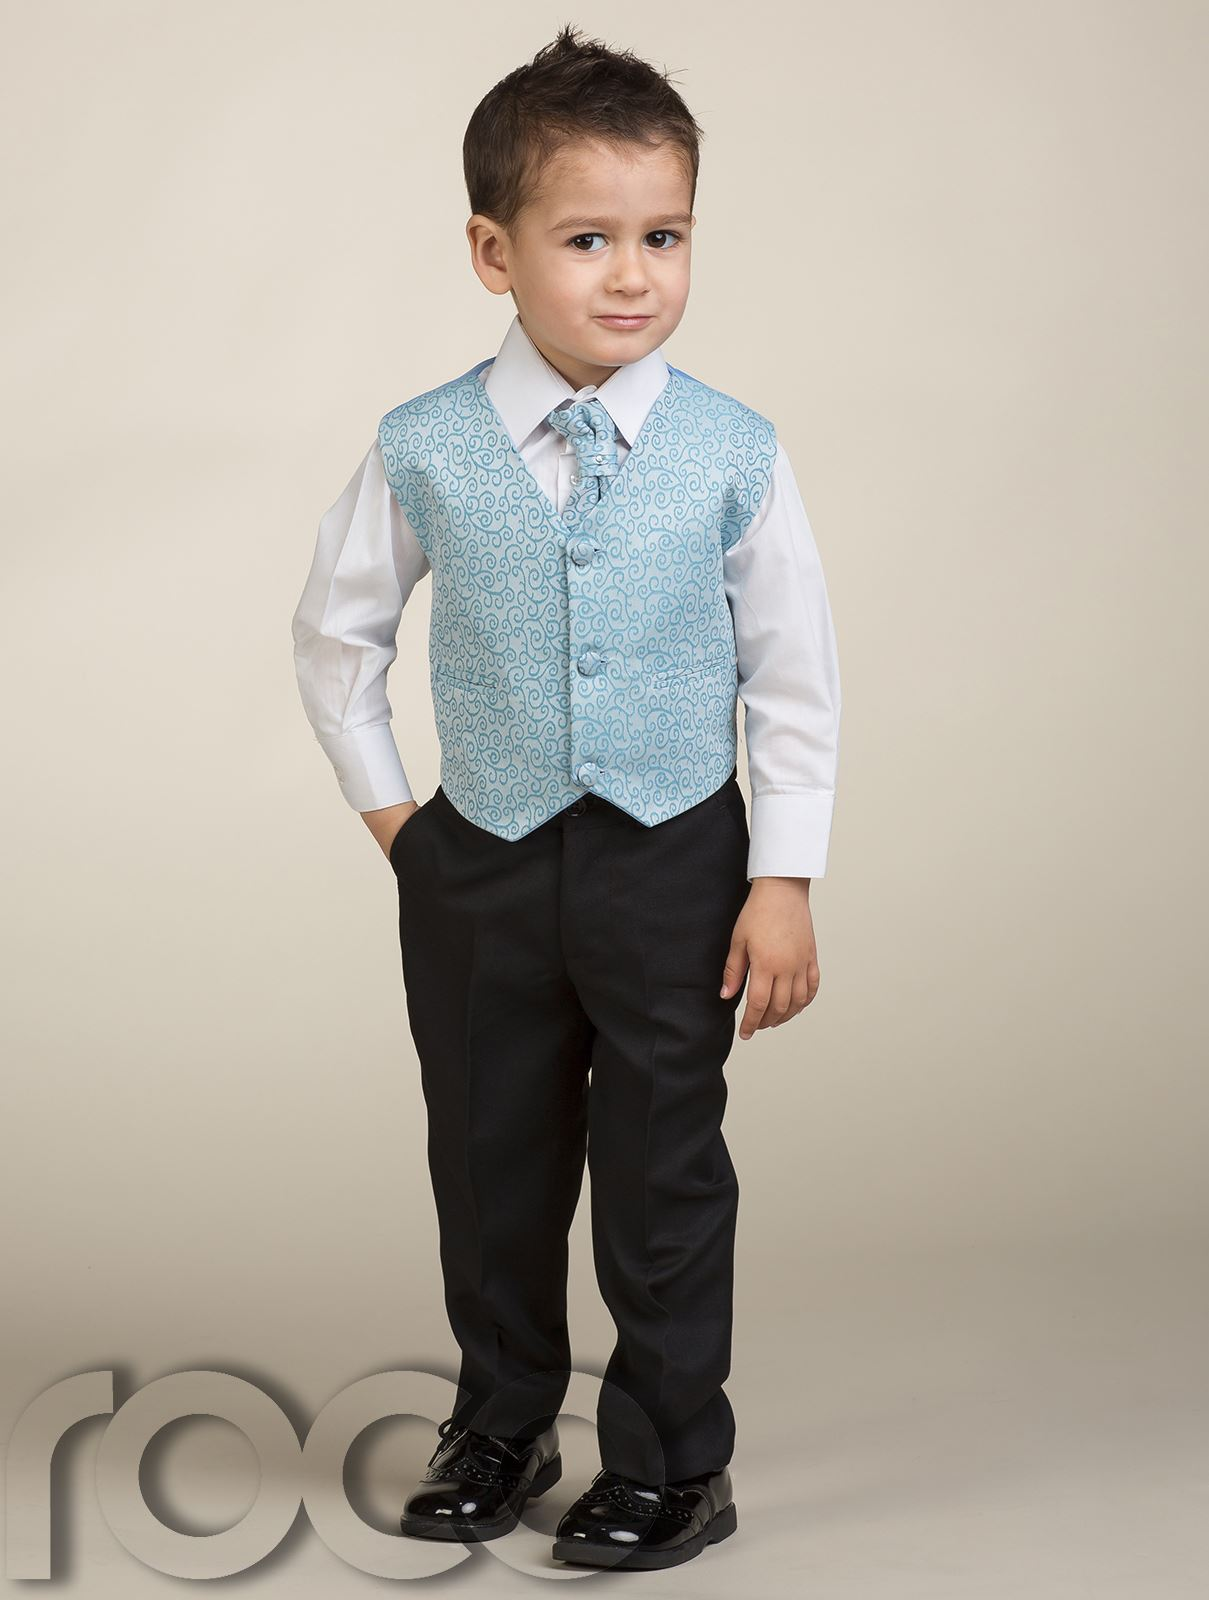 page boy suits boys-waistcoat-suit-page-boy-suits-prom-suits- mnknzpr